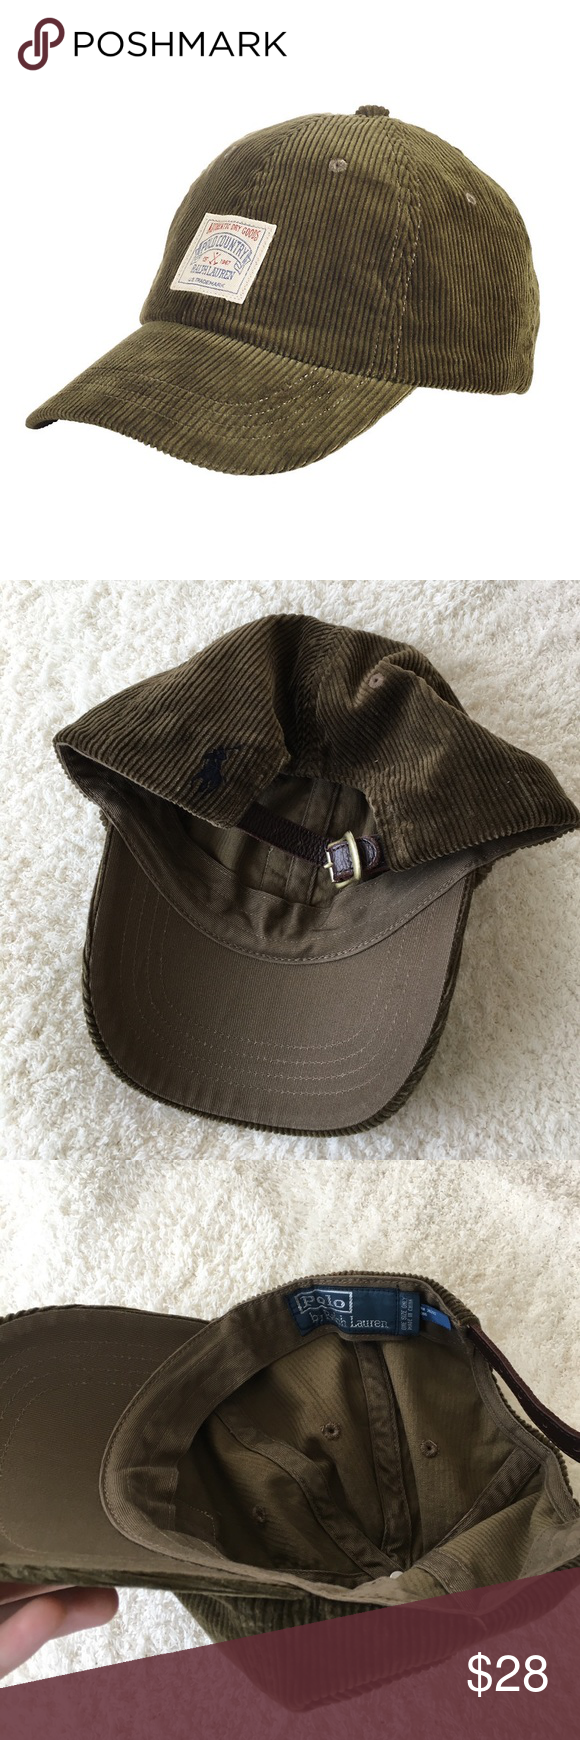 0e7ca6125ff Polo Ralph Lauren Corduroy Baseball Cap Olive green distressed corduroy hat  with leather strap and polo horse logo on the back. No signs of wear!